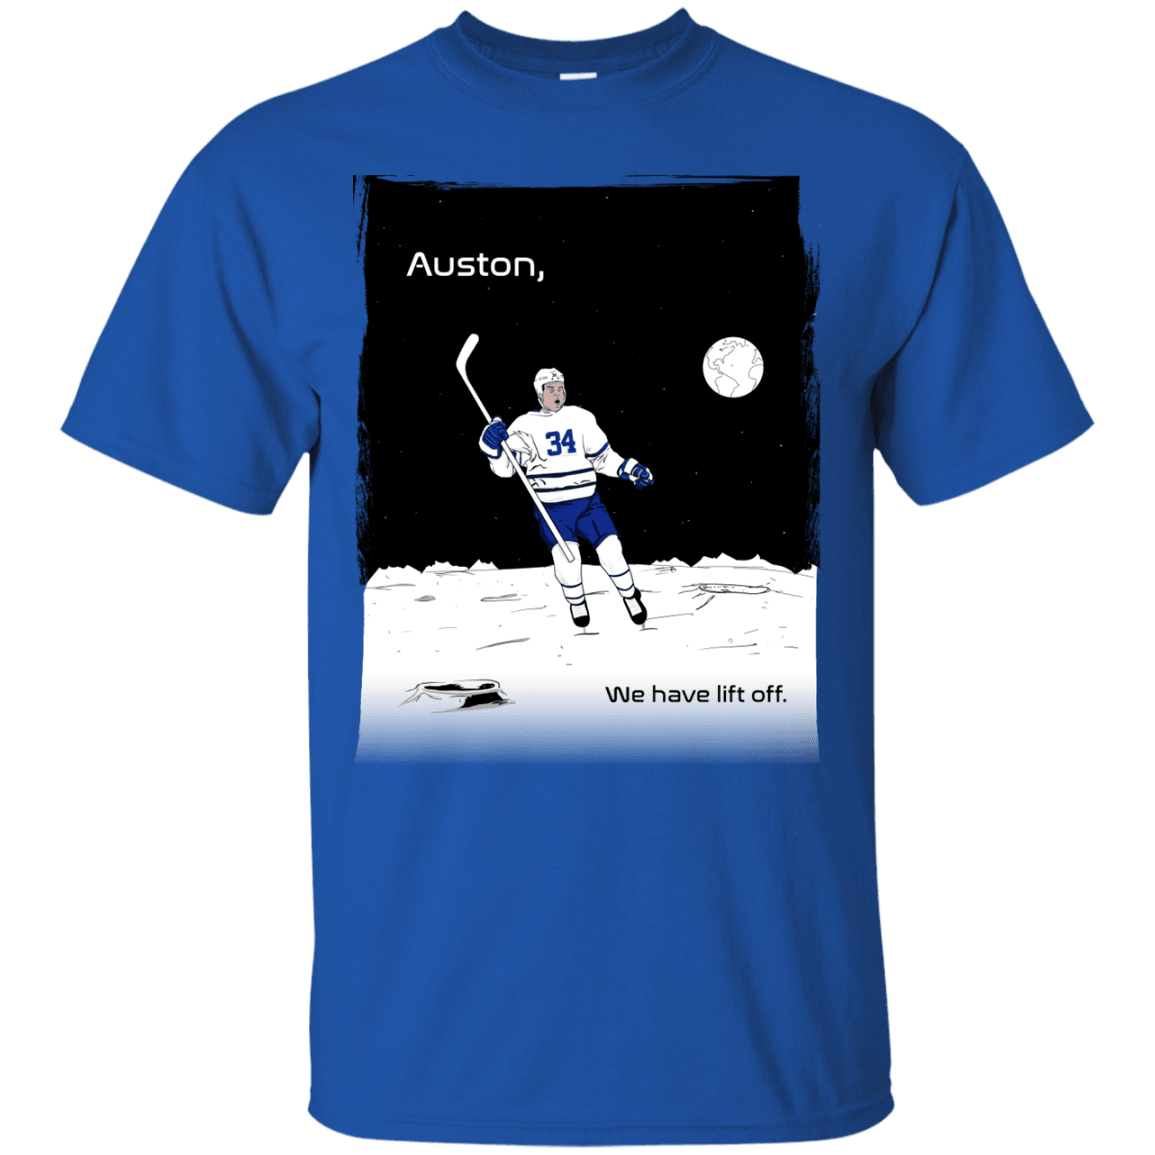 Auston Leafs Inspired Ultra Cotton T-Shirt - Generation T